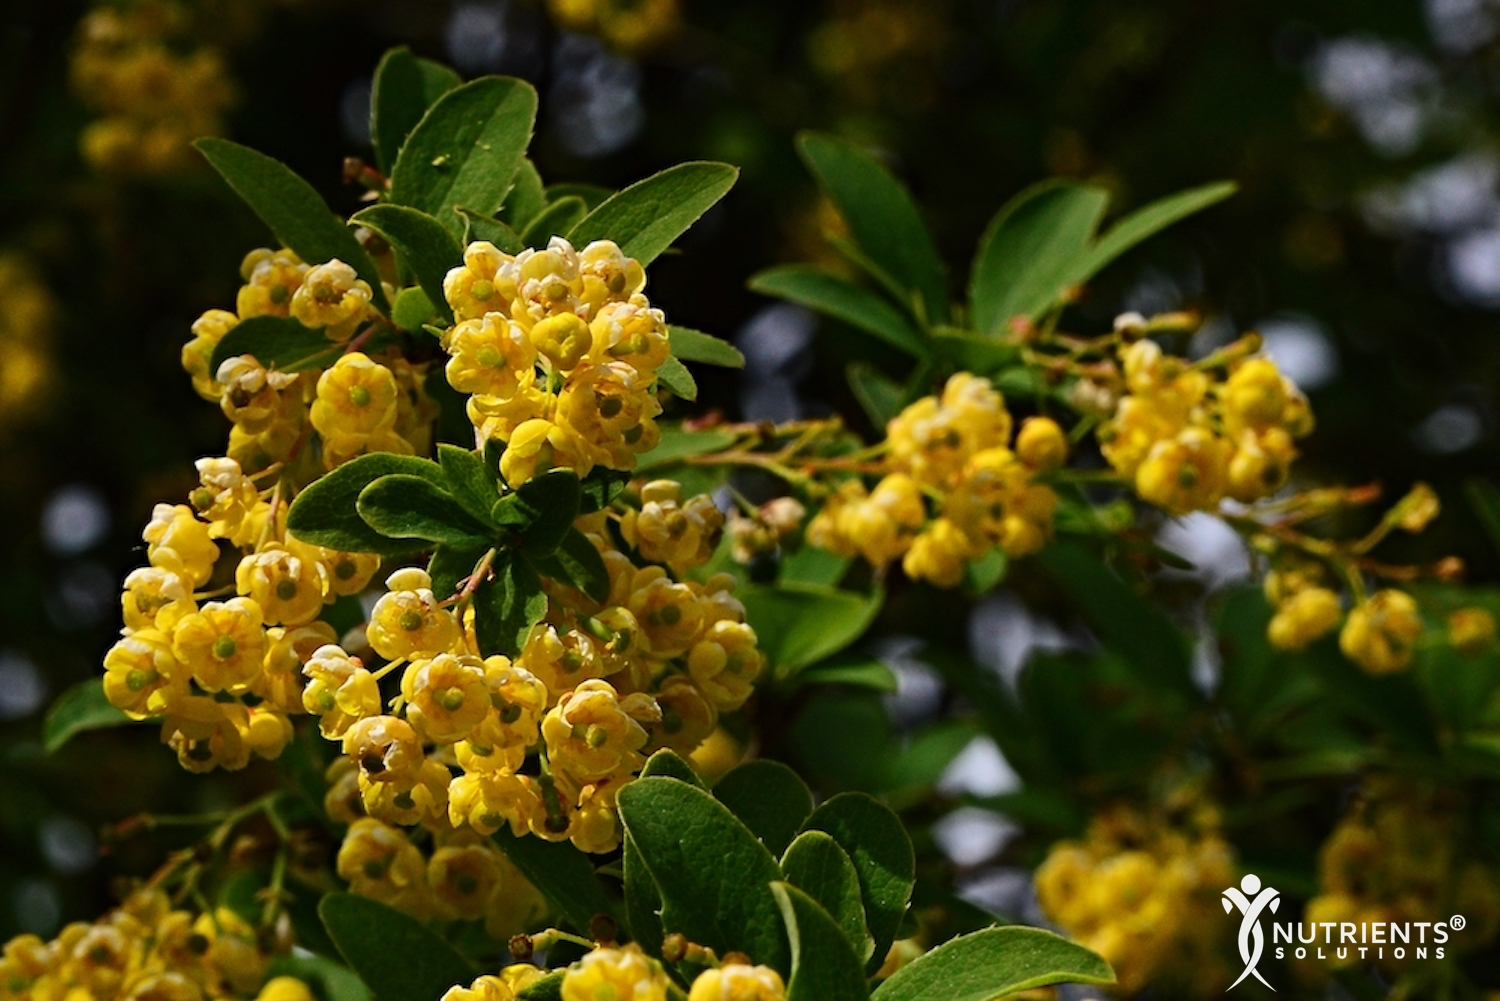 Berberine Used For Thousands of Years to Treat Ailments